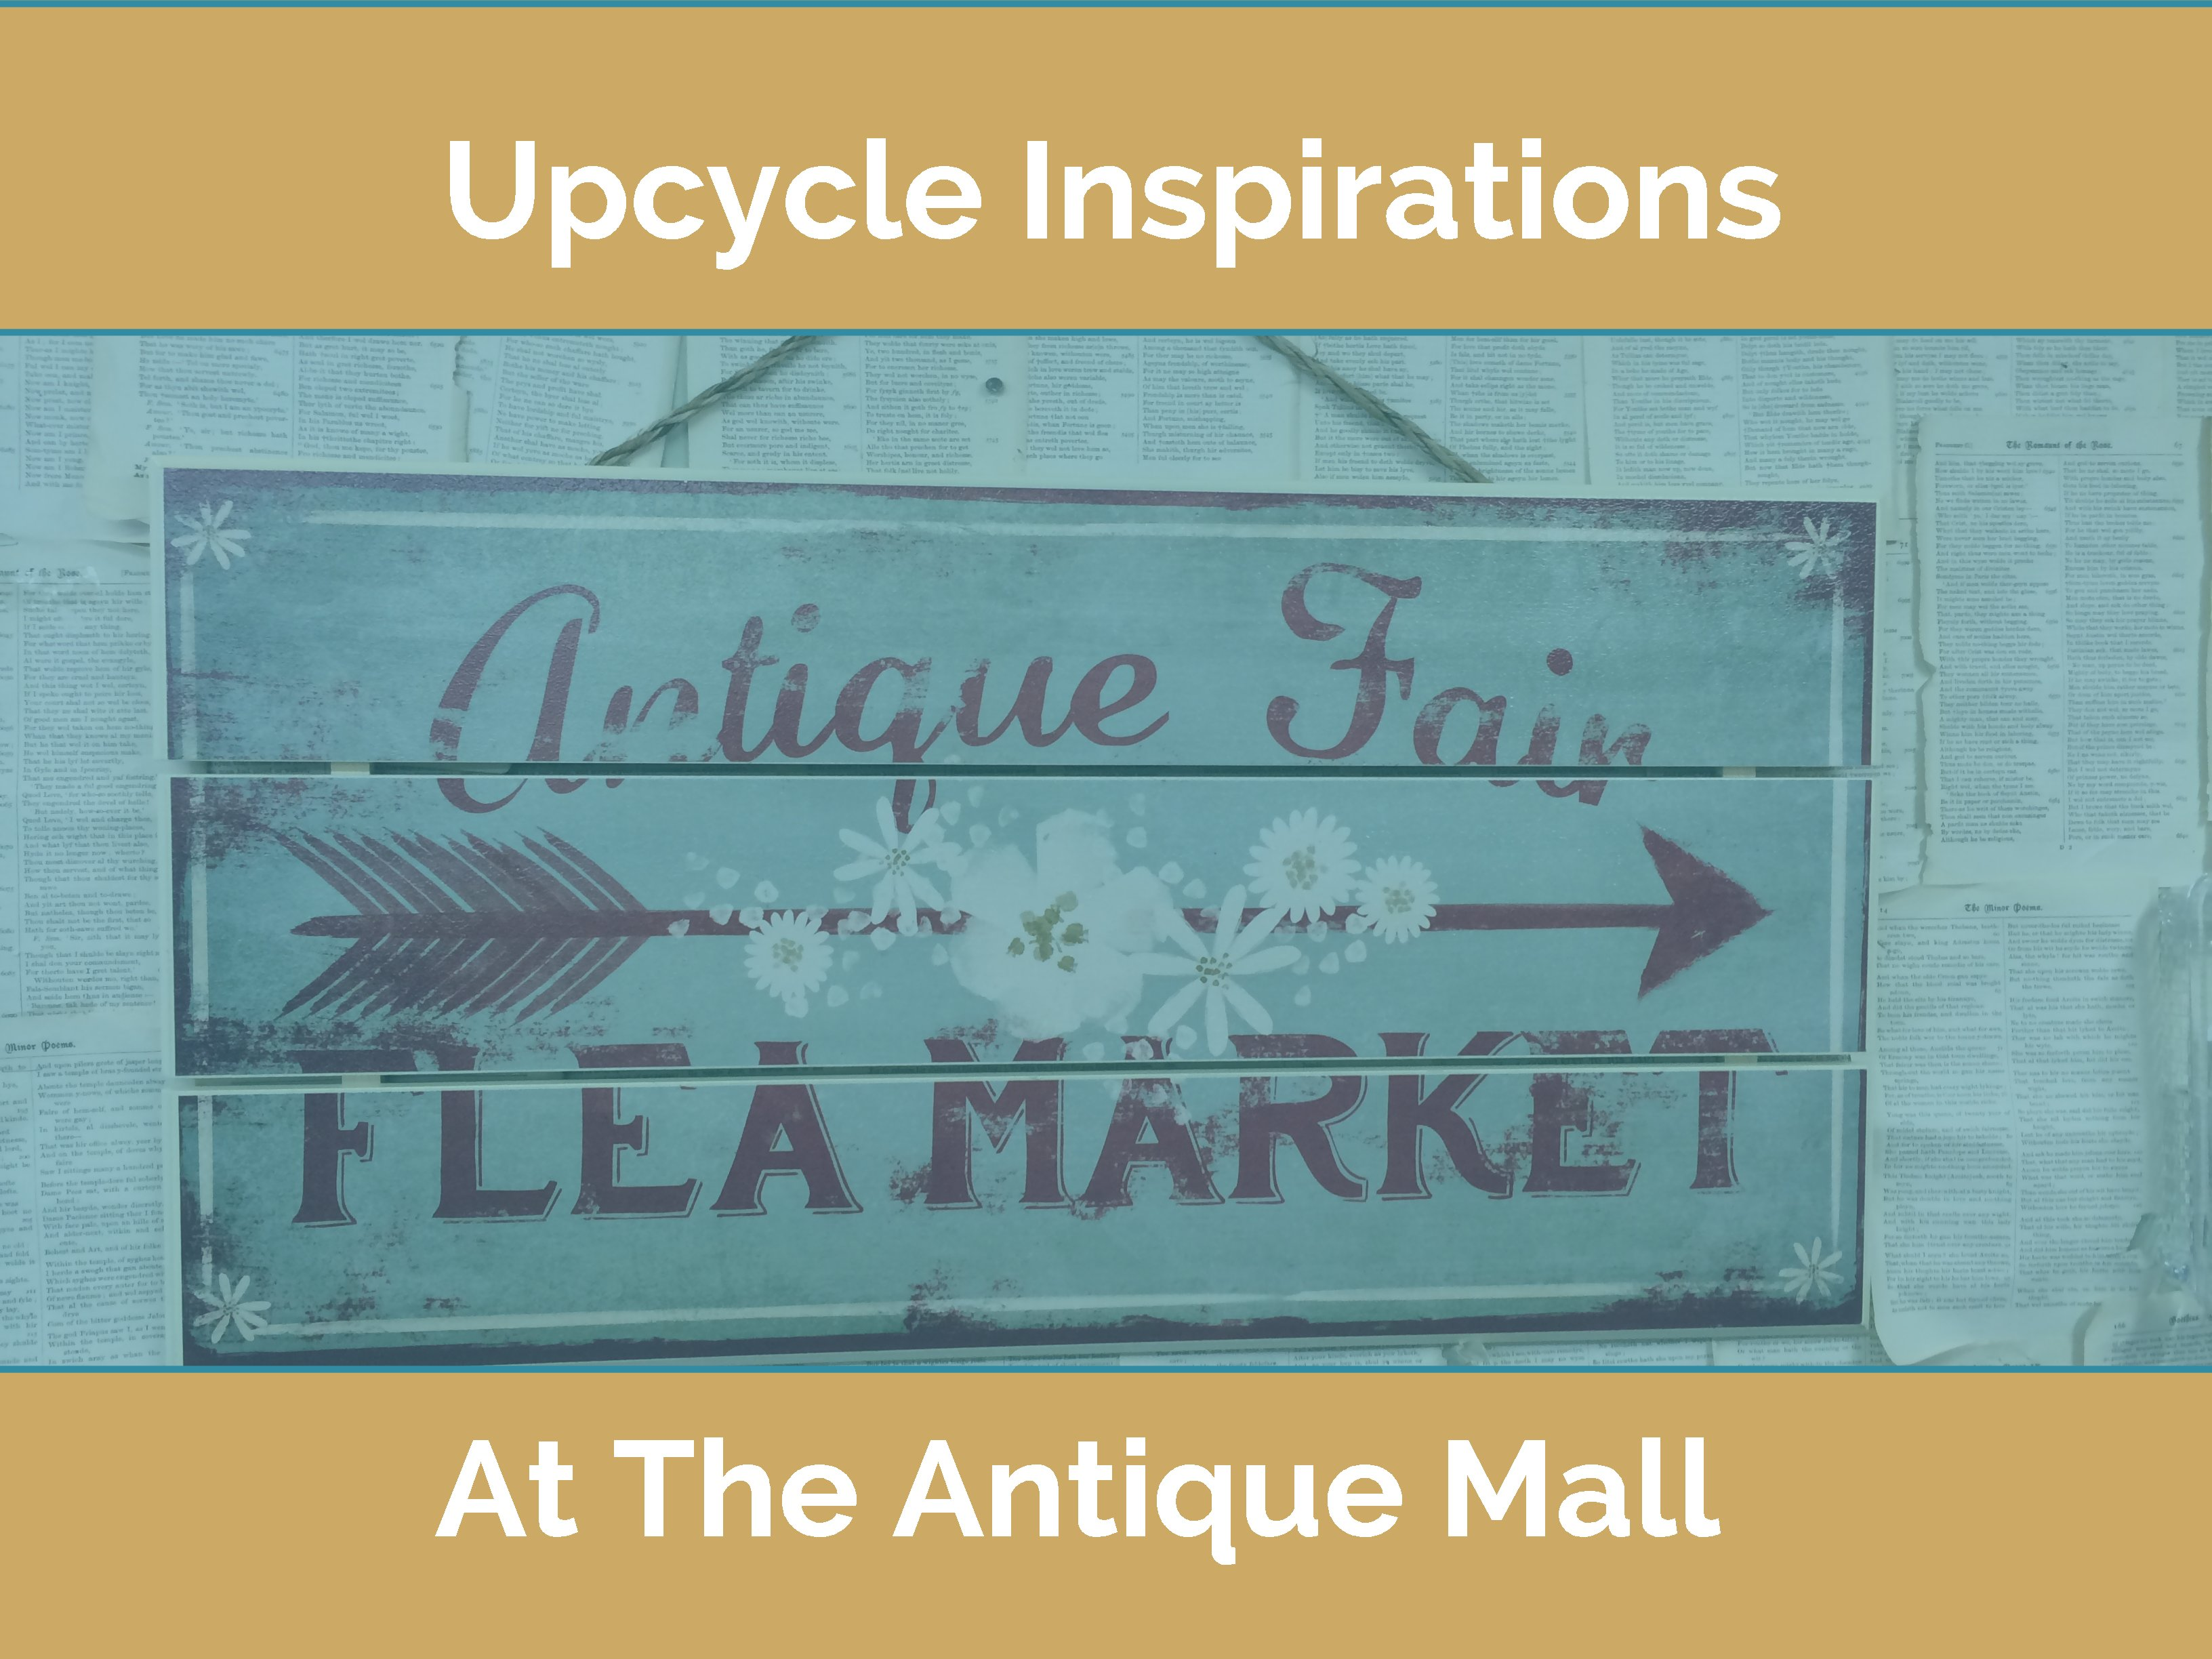 3 Upcycle Inspirations at the Antique Mall